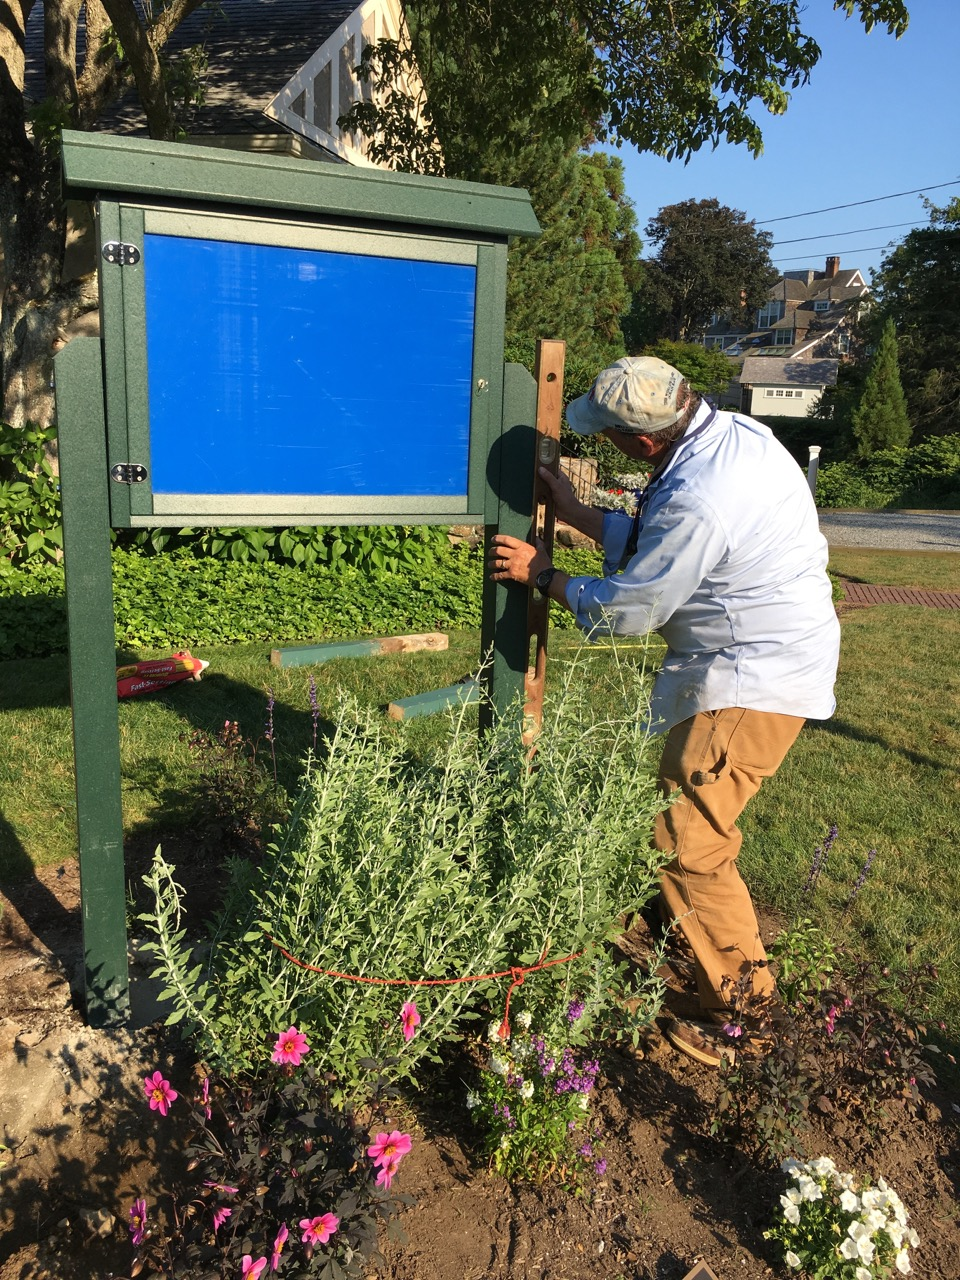 Grant Simmons installing the new Information Board